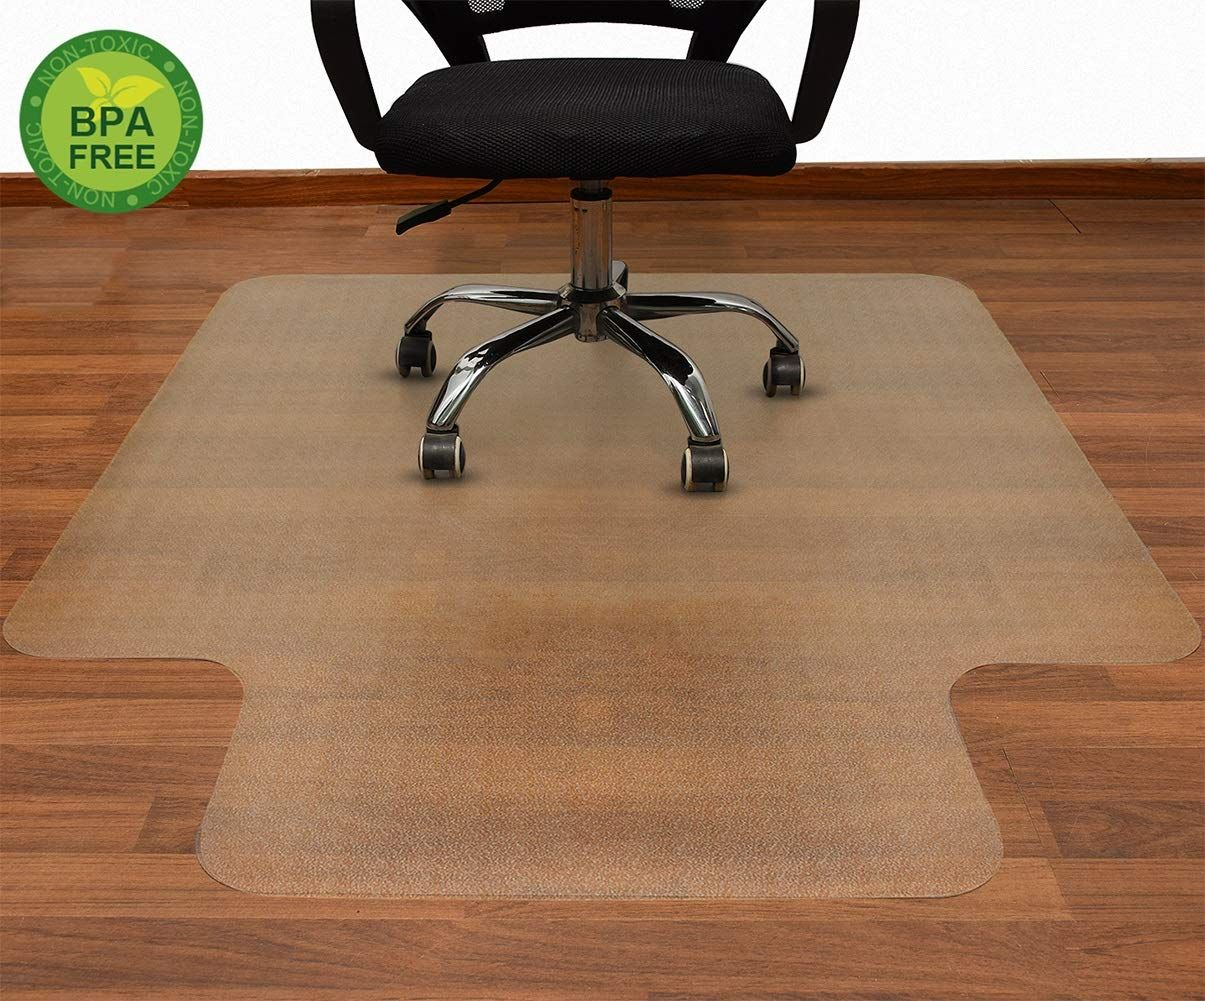 AiBOB 53 x 45 inches Office Chair mat for Hardwood Floor